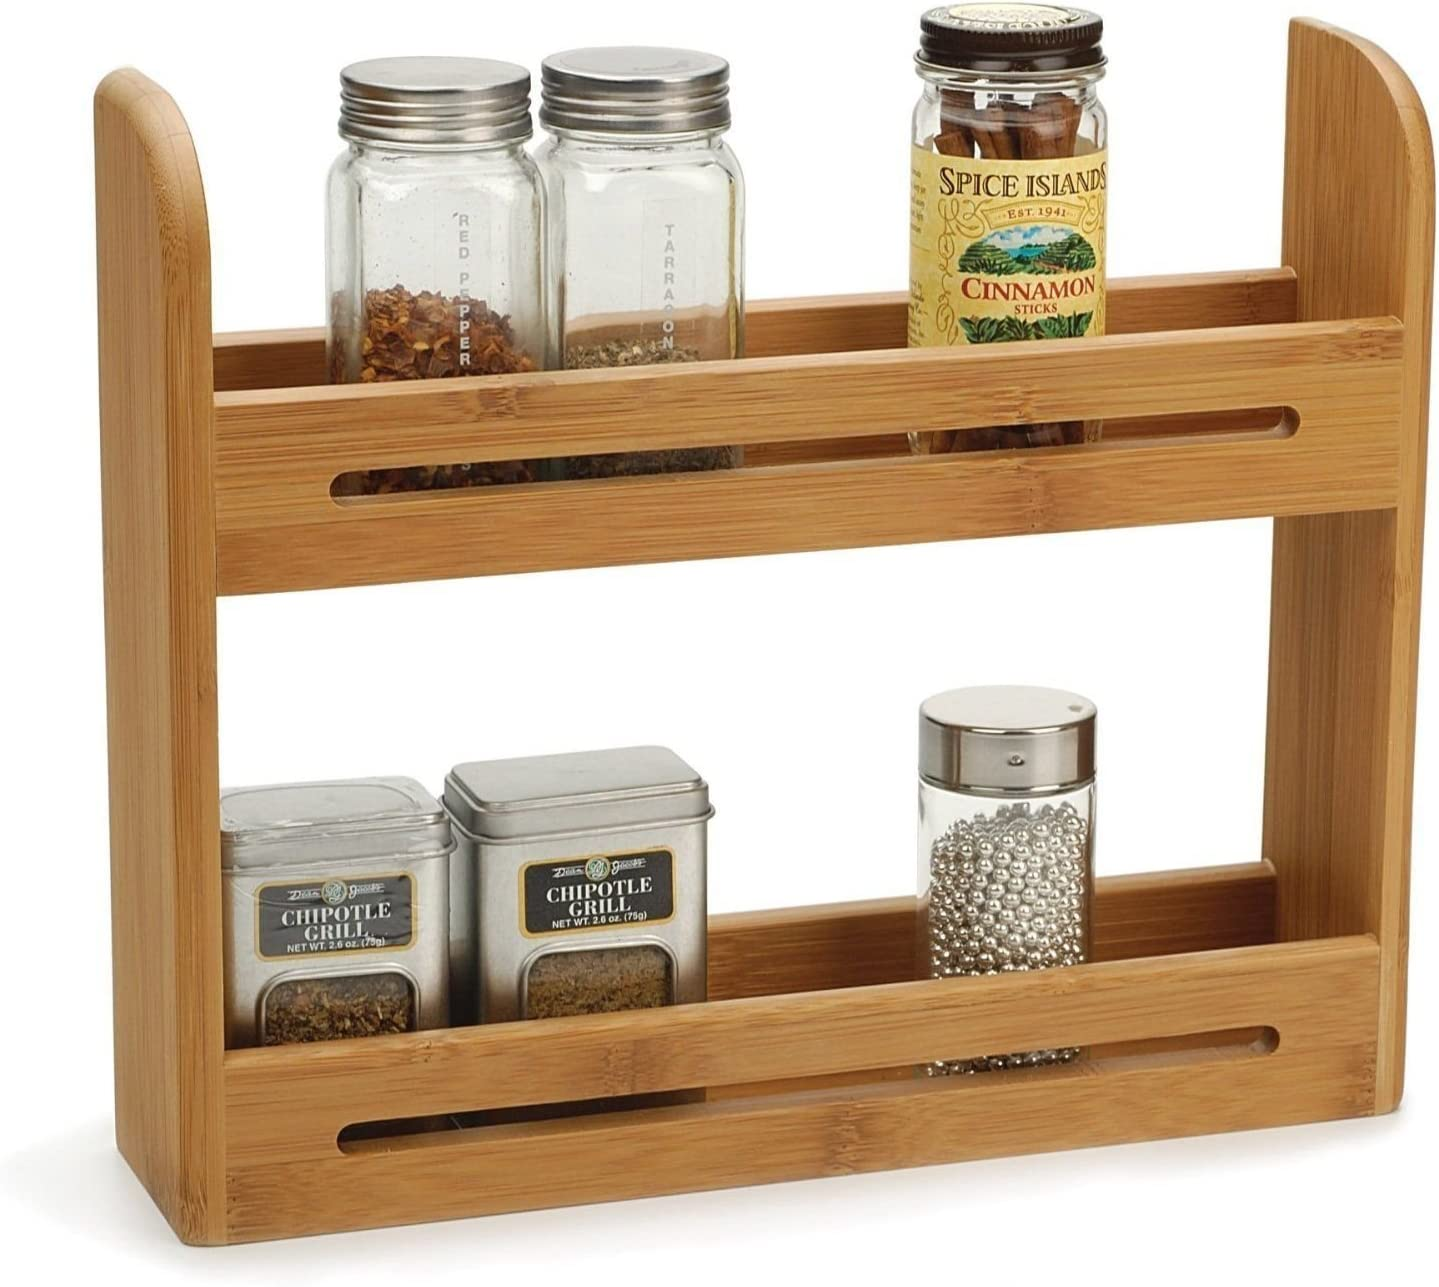 rsvp international bamboo spice rack 12 x 2 75 x 10 25 holds 12 rsvp 3 ounce spice jars eco friendly sustainable natural bamboo use on